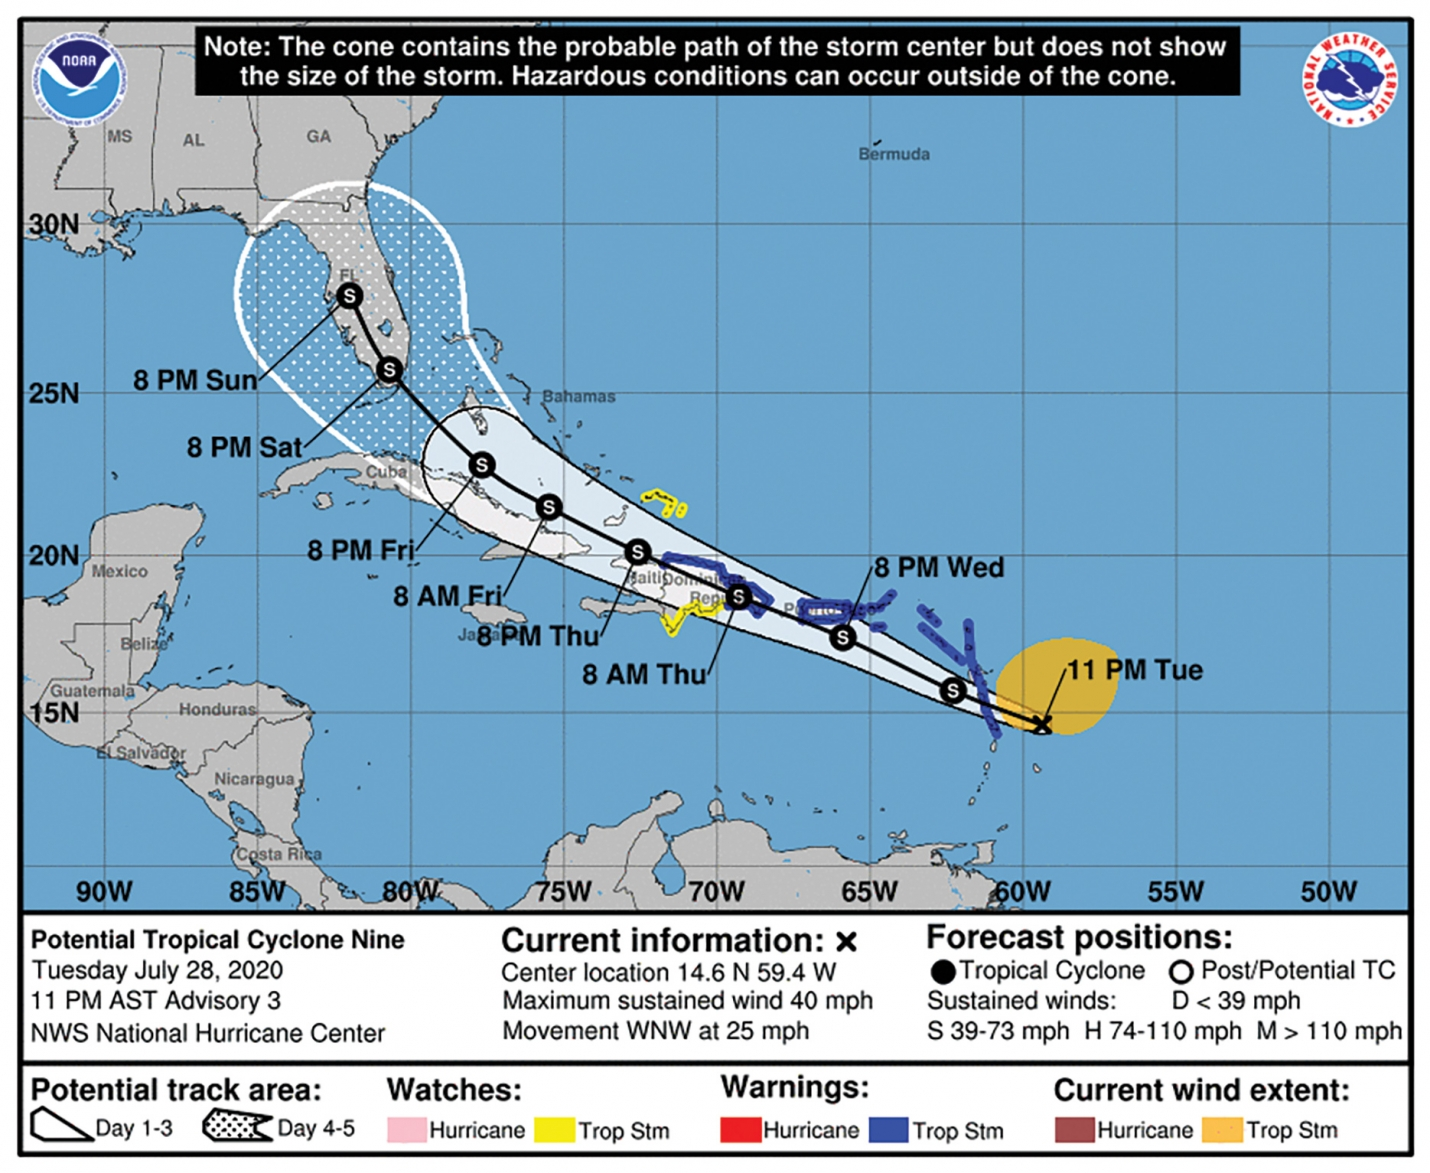 "The National Hurricane Center (NHC) is tracking a  ""Potential Tropical Cyclone Nine"" and forecasted on Tuesday July 28th, the storm reaching Florida over the weekend. While it's still early and predictions can change in the days to come,  everyone should monitor the storm's path and prepare."